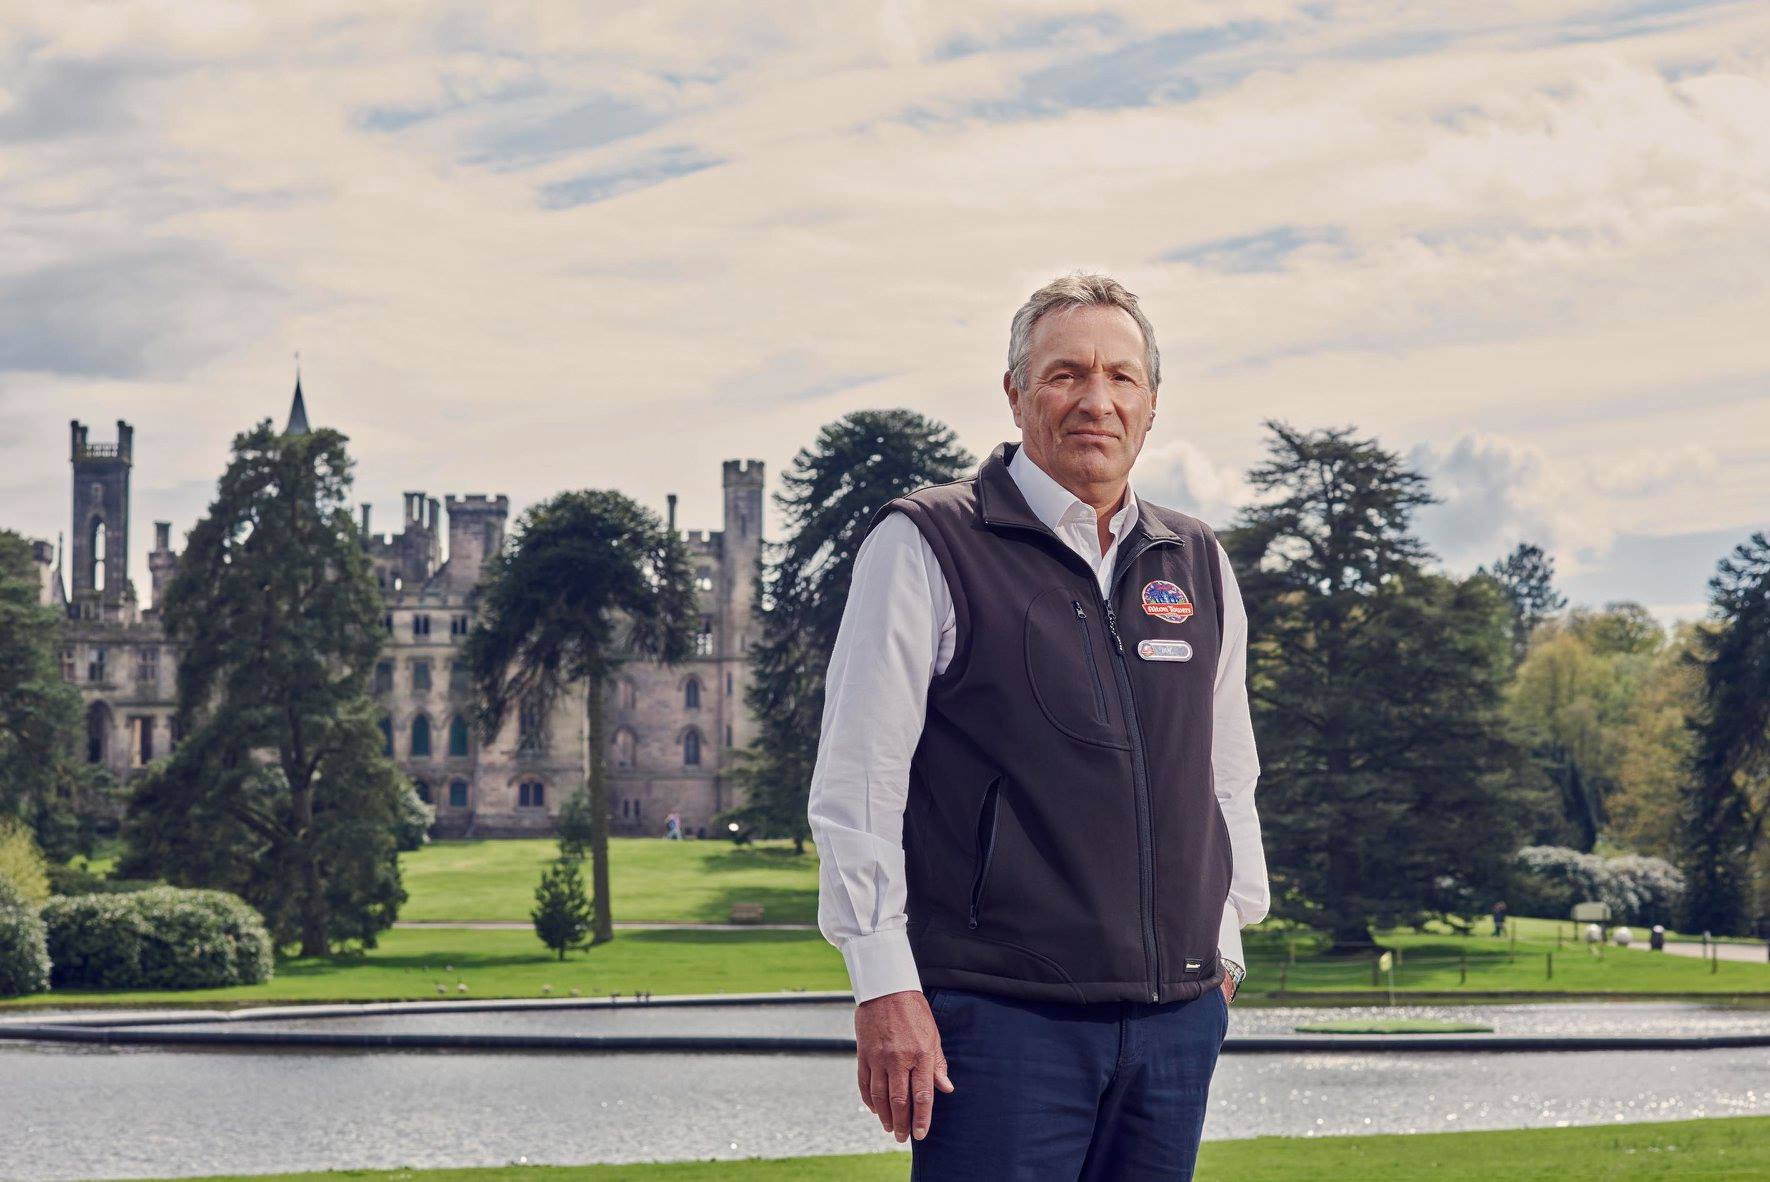 Ian Crabbe - General Manager at Alton Towers Resort features heavily in Inside Alton Towers